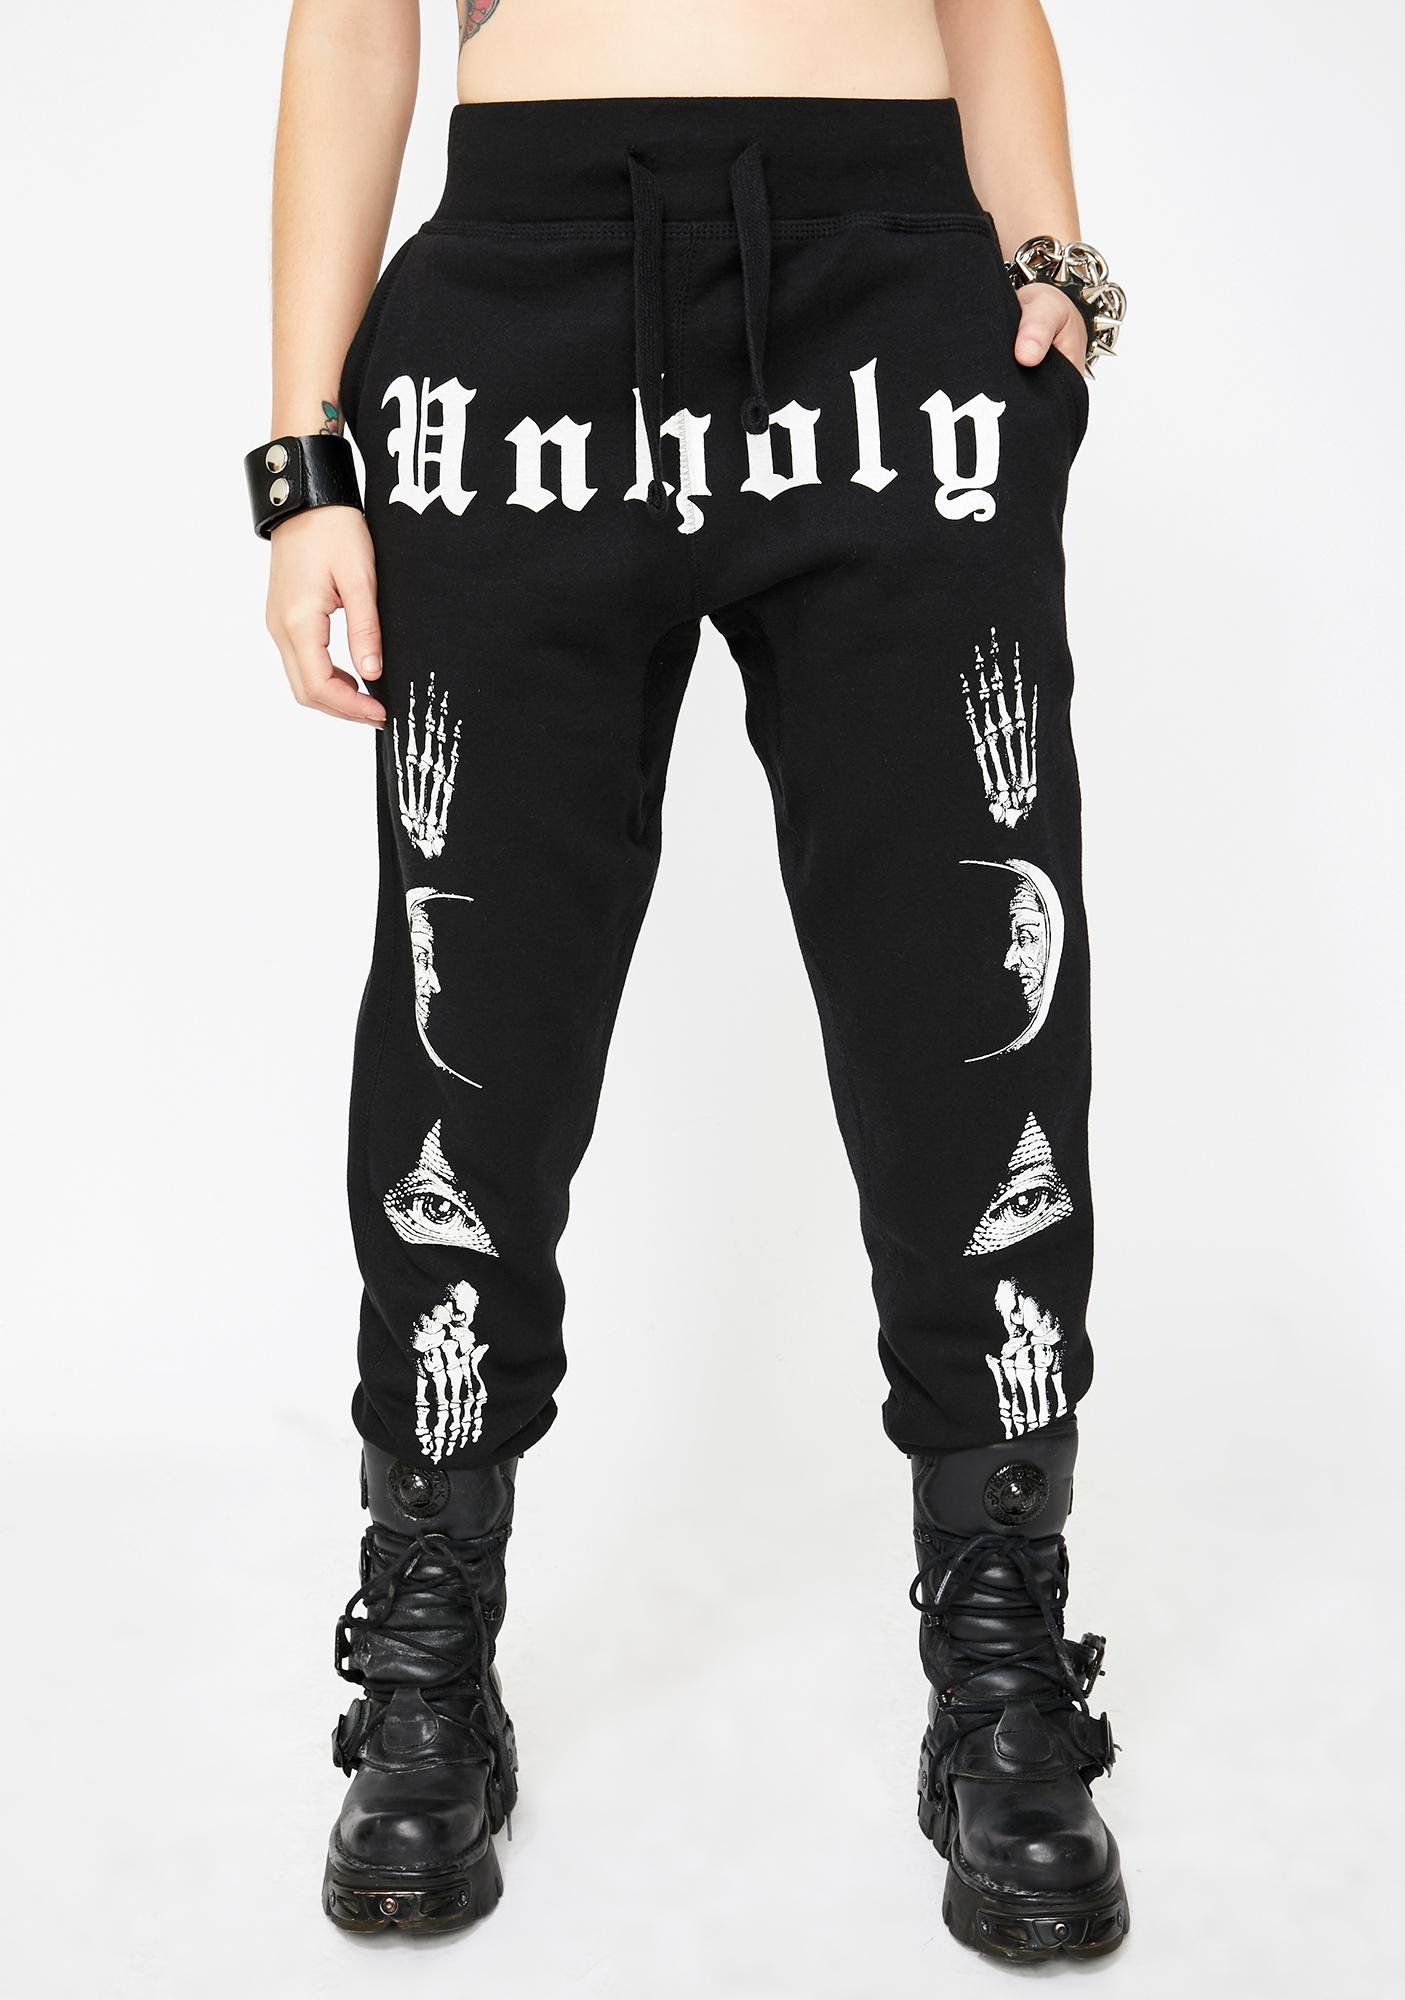 Blackcraft Unholy Joggers